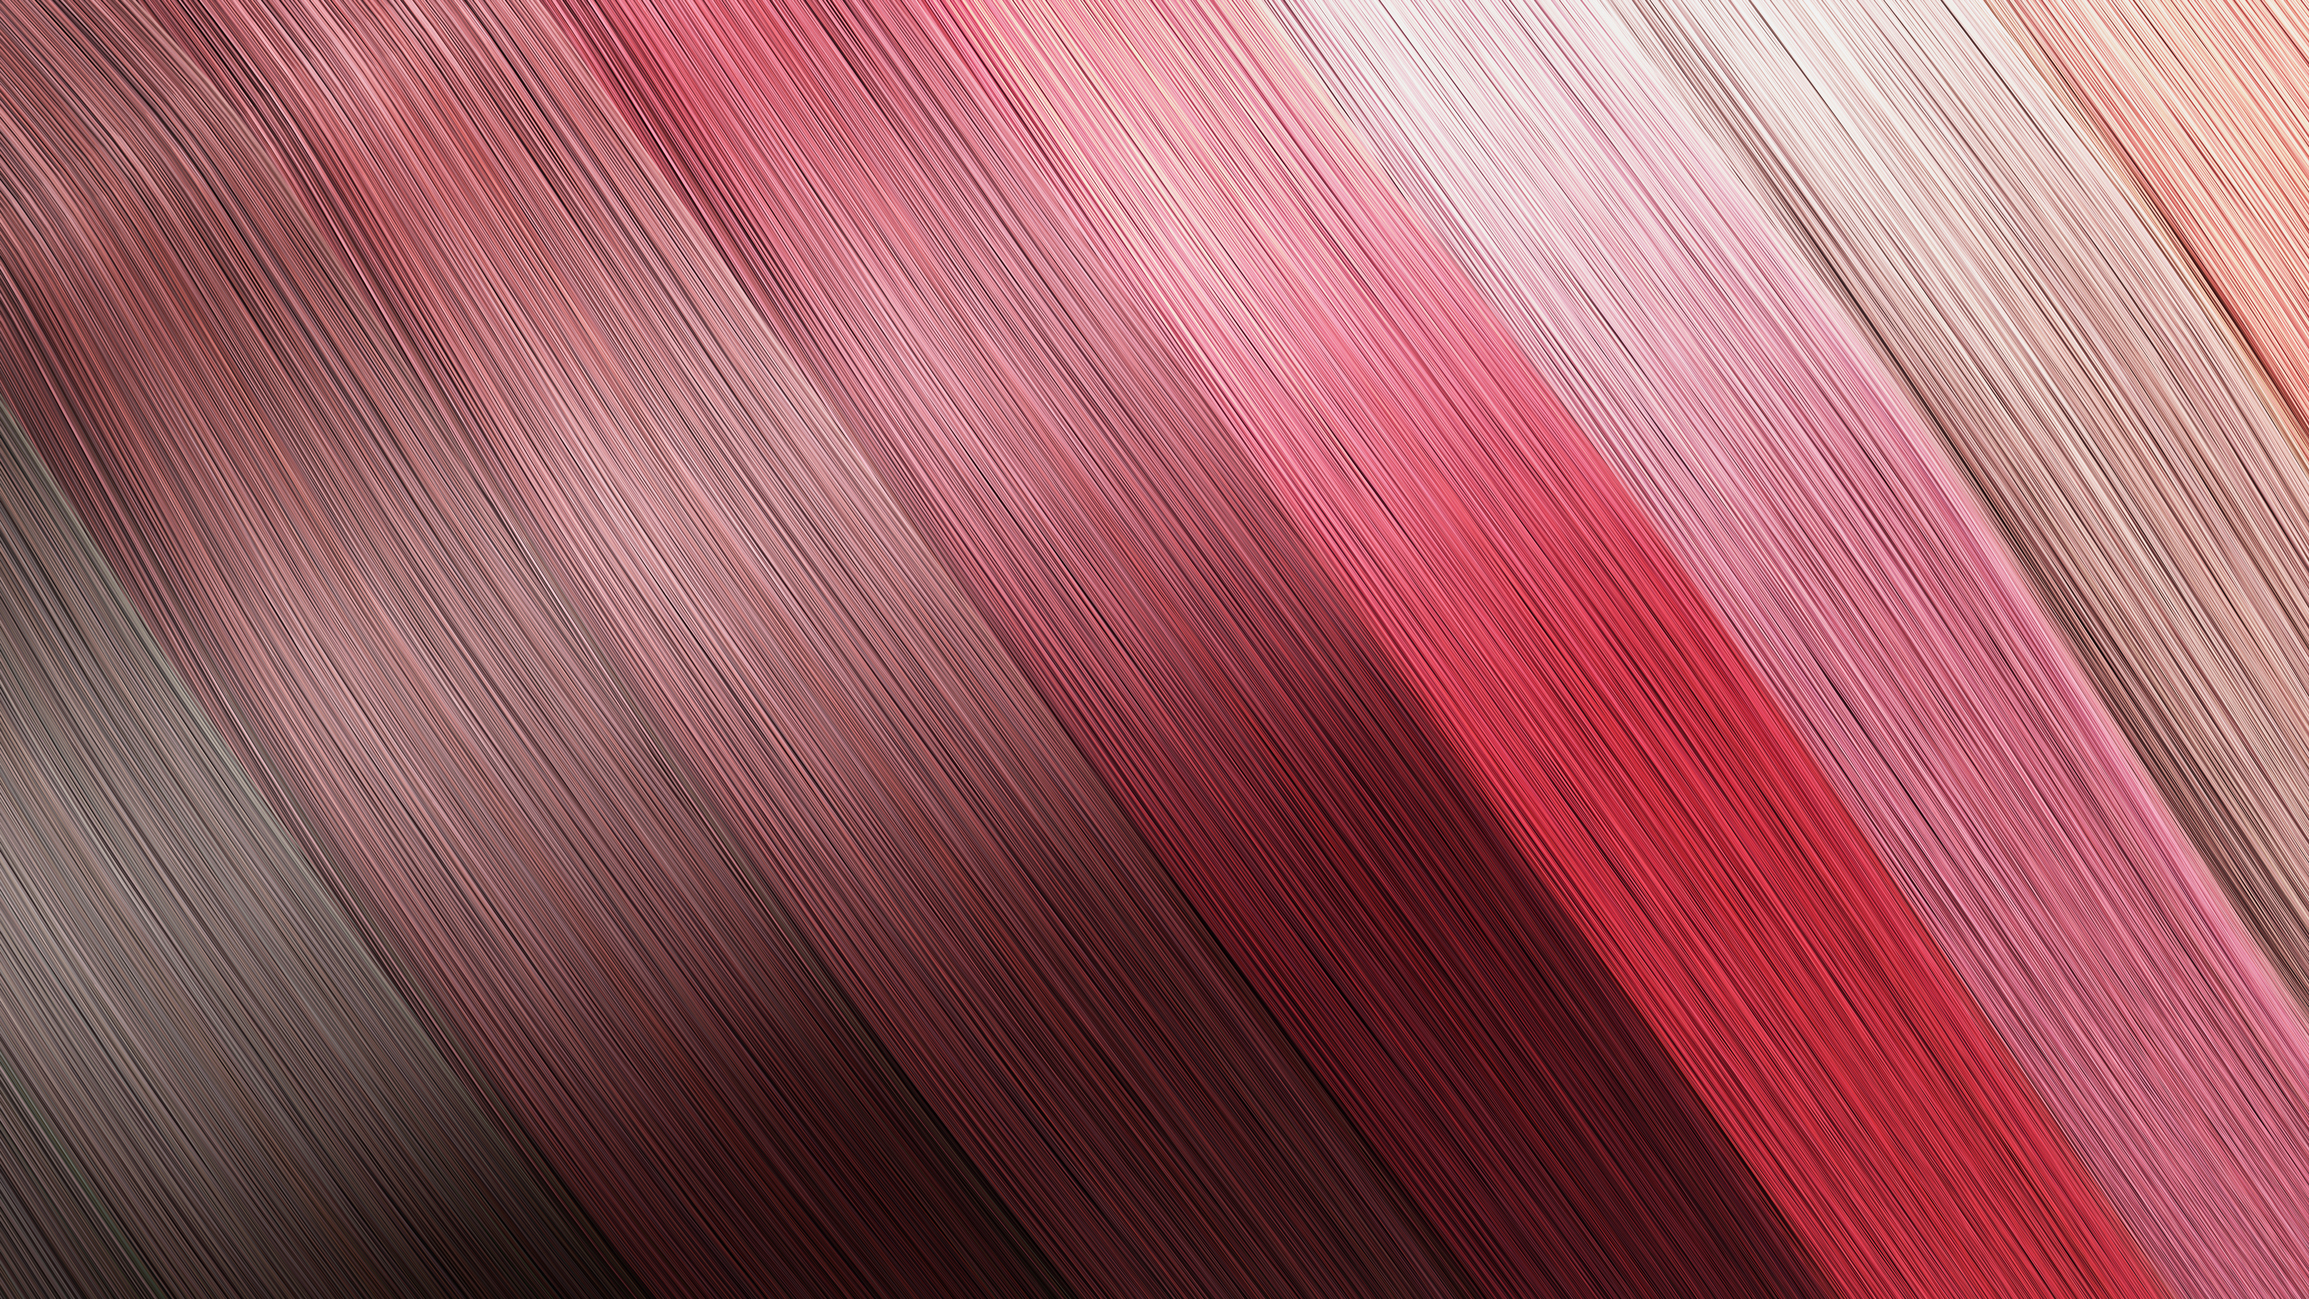 Example of different hair colors as background